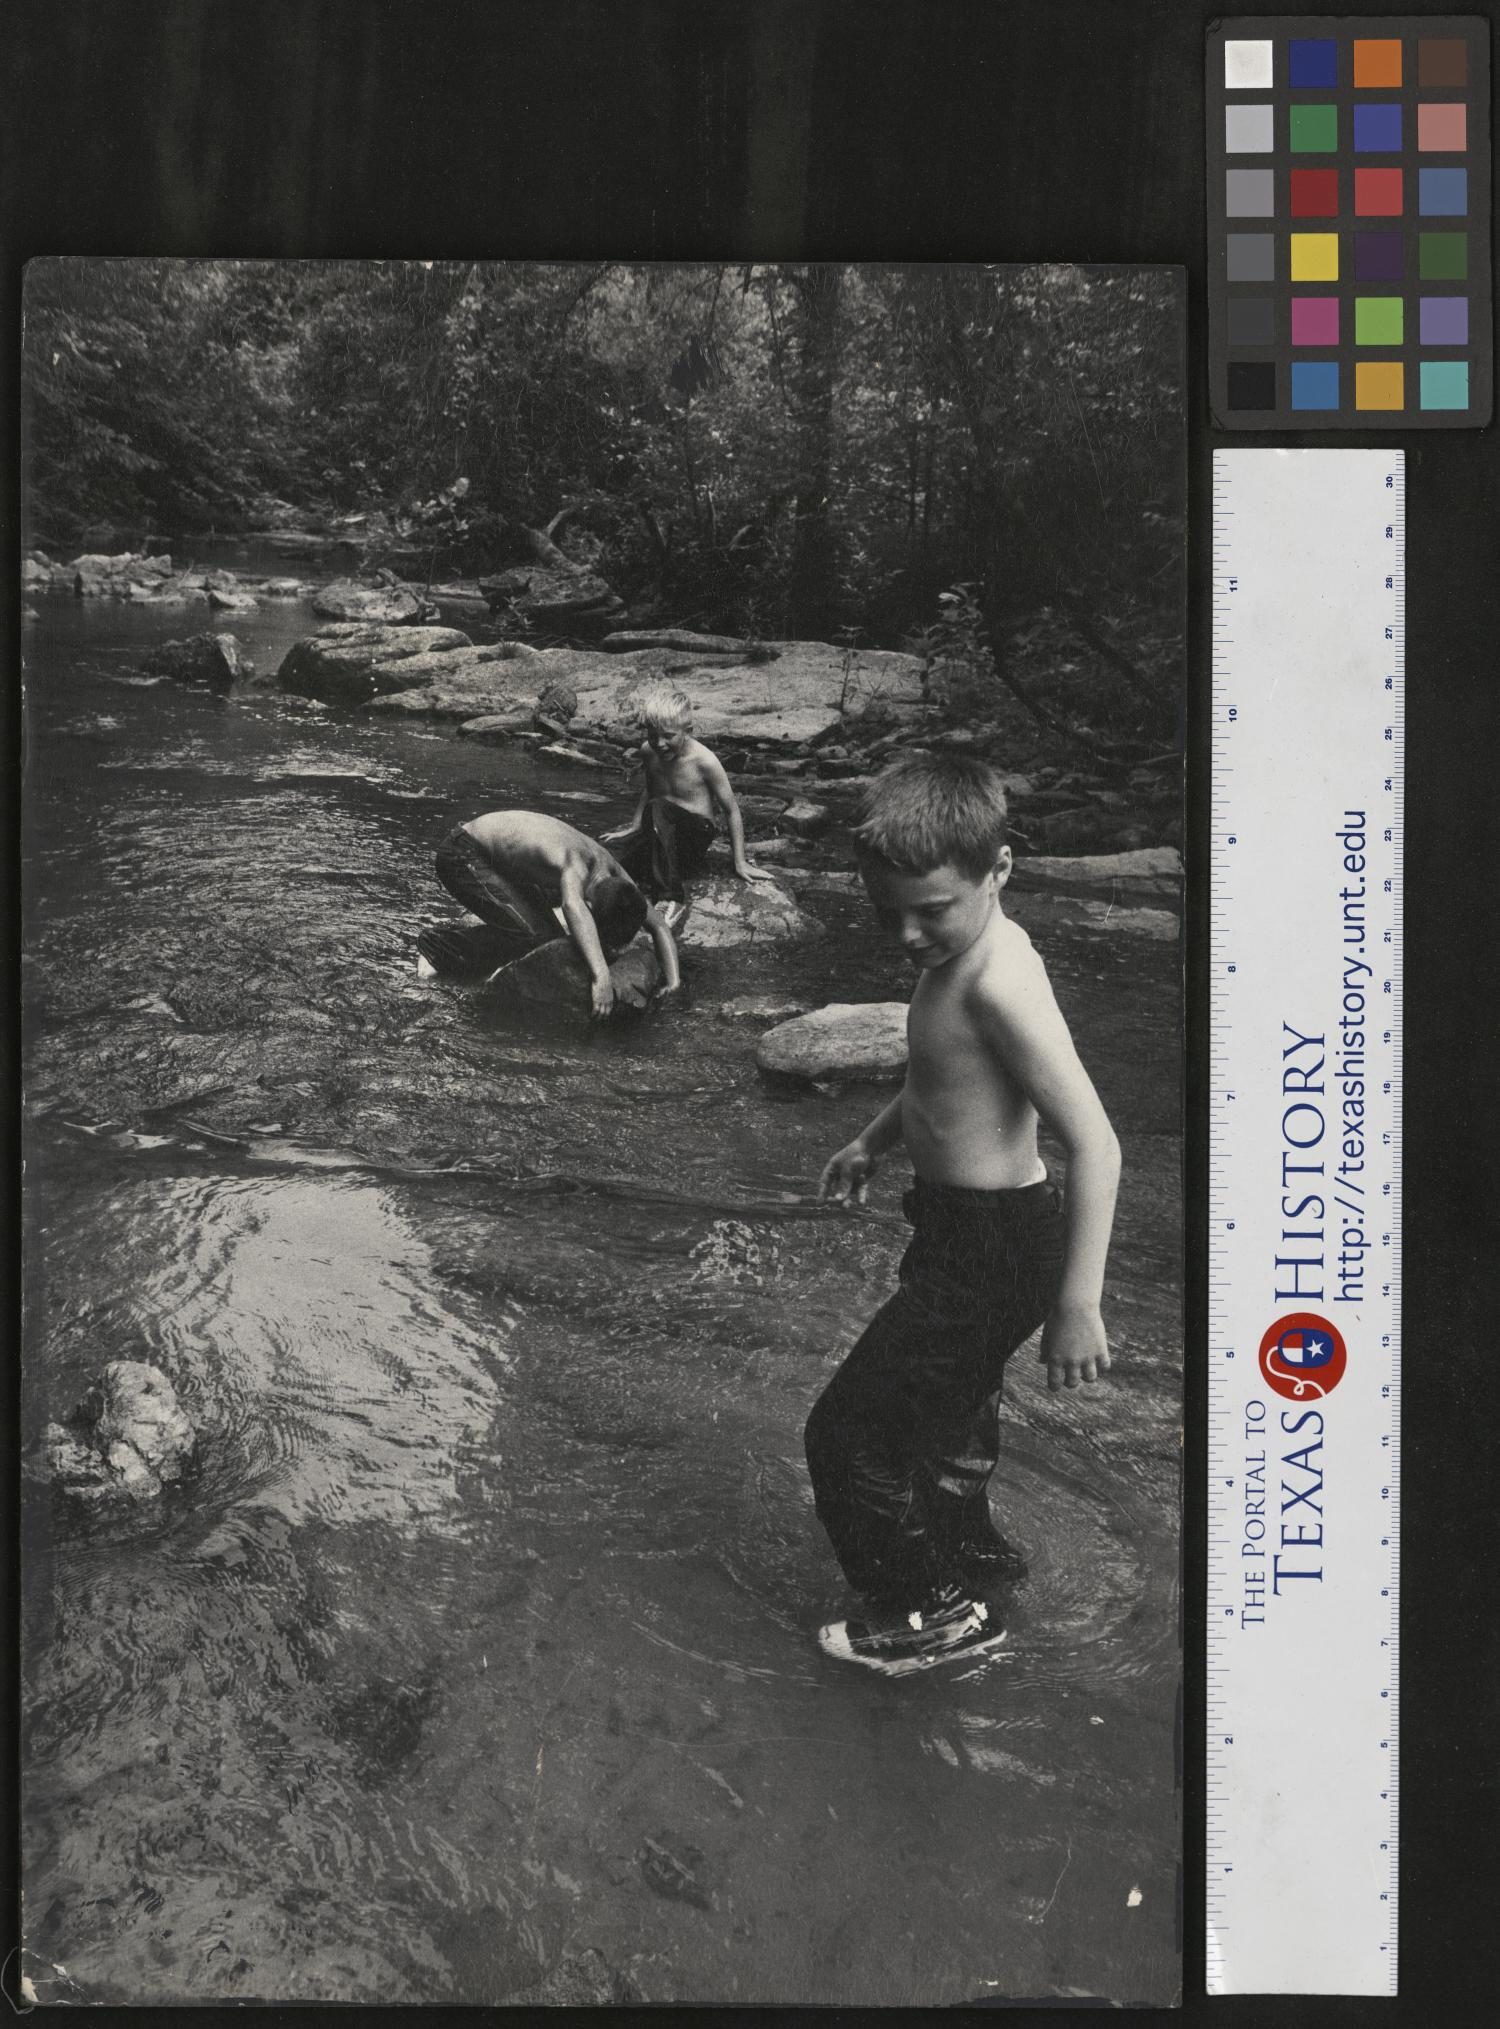 """[Boys Playing in Creek], Photograph of three boys playing in a creek, in Cumberland Gap, Tennessee. Rocks and trees line the edges of the water. Narrative by Junebug Clark: We are being taught how to catch fish with our bare hands by Jimmy Powell. In the center is my Detroit cousin Tom Krent who made trips to Tennessee with us. I, Junebug Clark am on the right. Jimmy is showing us how to feel under rocks and catch fish, or craw dads or snapping turtles. We are on my fathers farm, """"Vertical Acres"""" fishing in Keg Branch.,"""